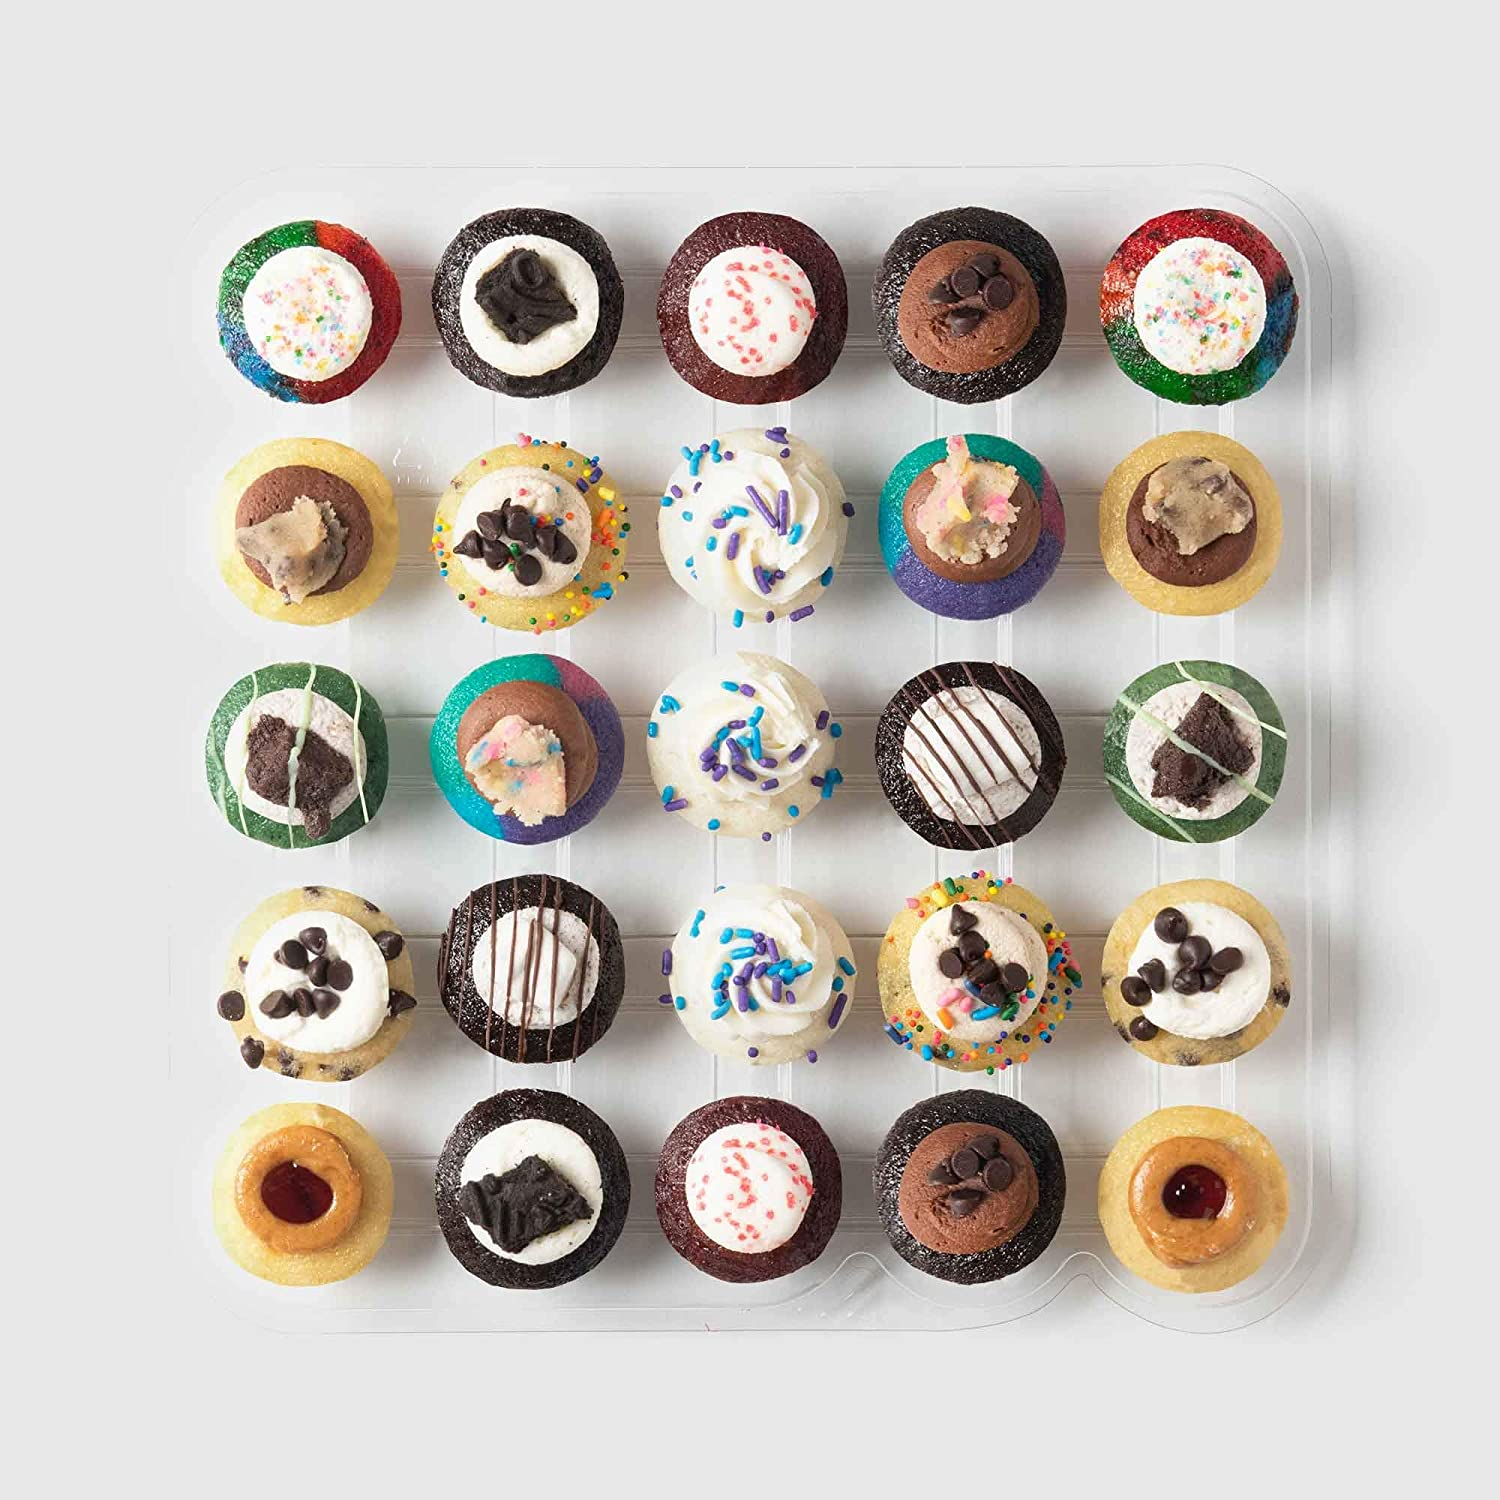 Baked by overseas Melissa Cupcakes - Assorted Greatest Bite-Si 2021 Latest